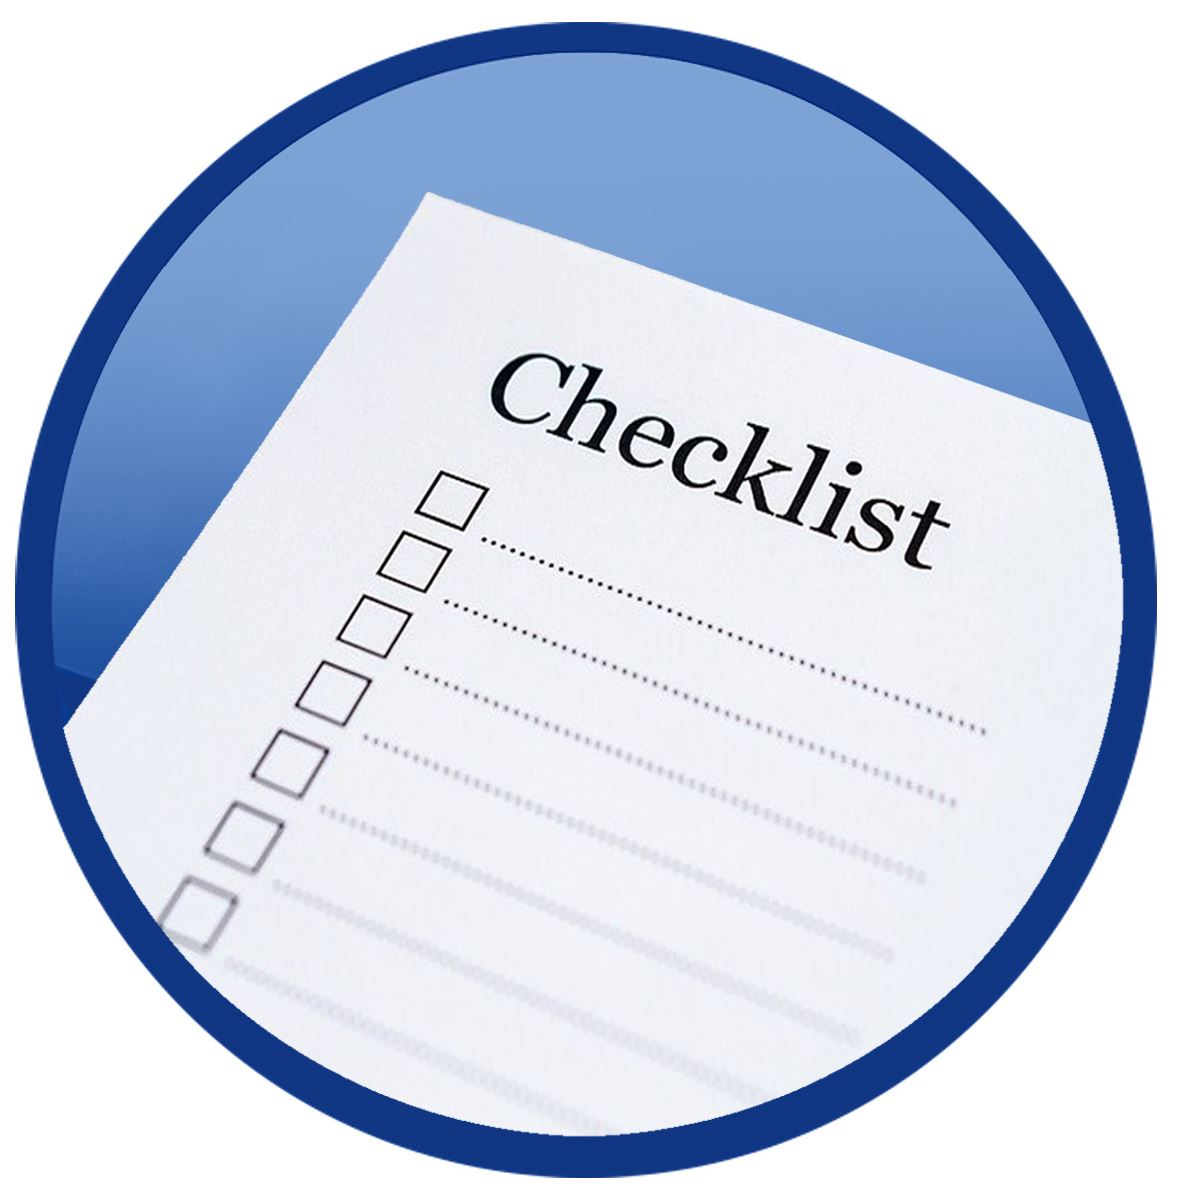 Checklist Icon takes you to forms and checklists page